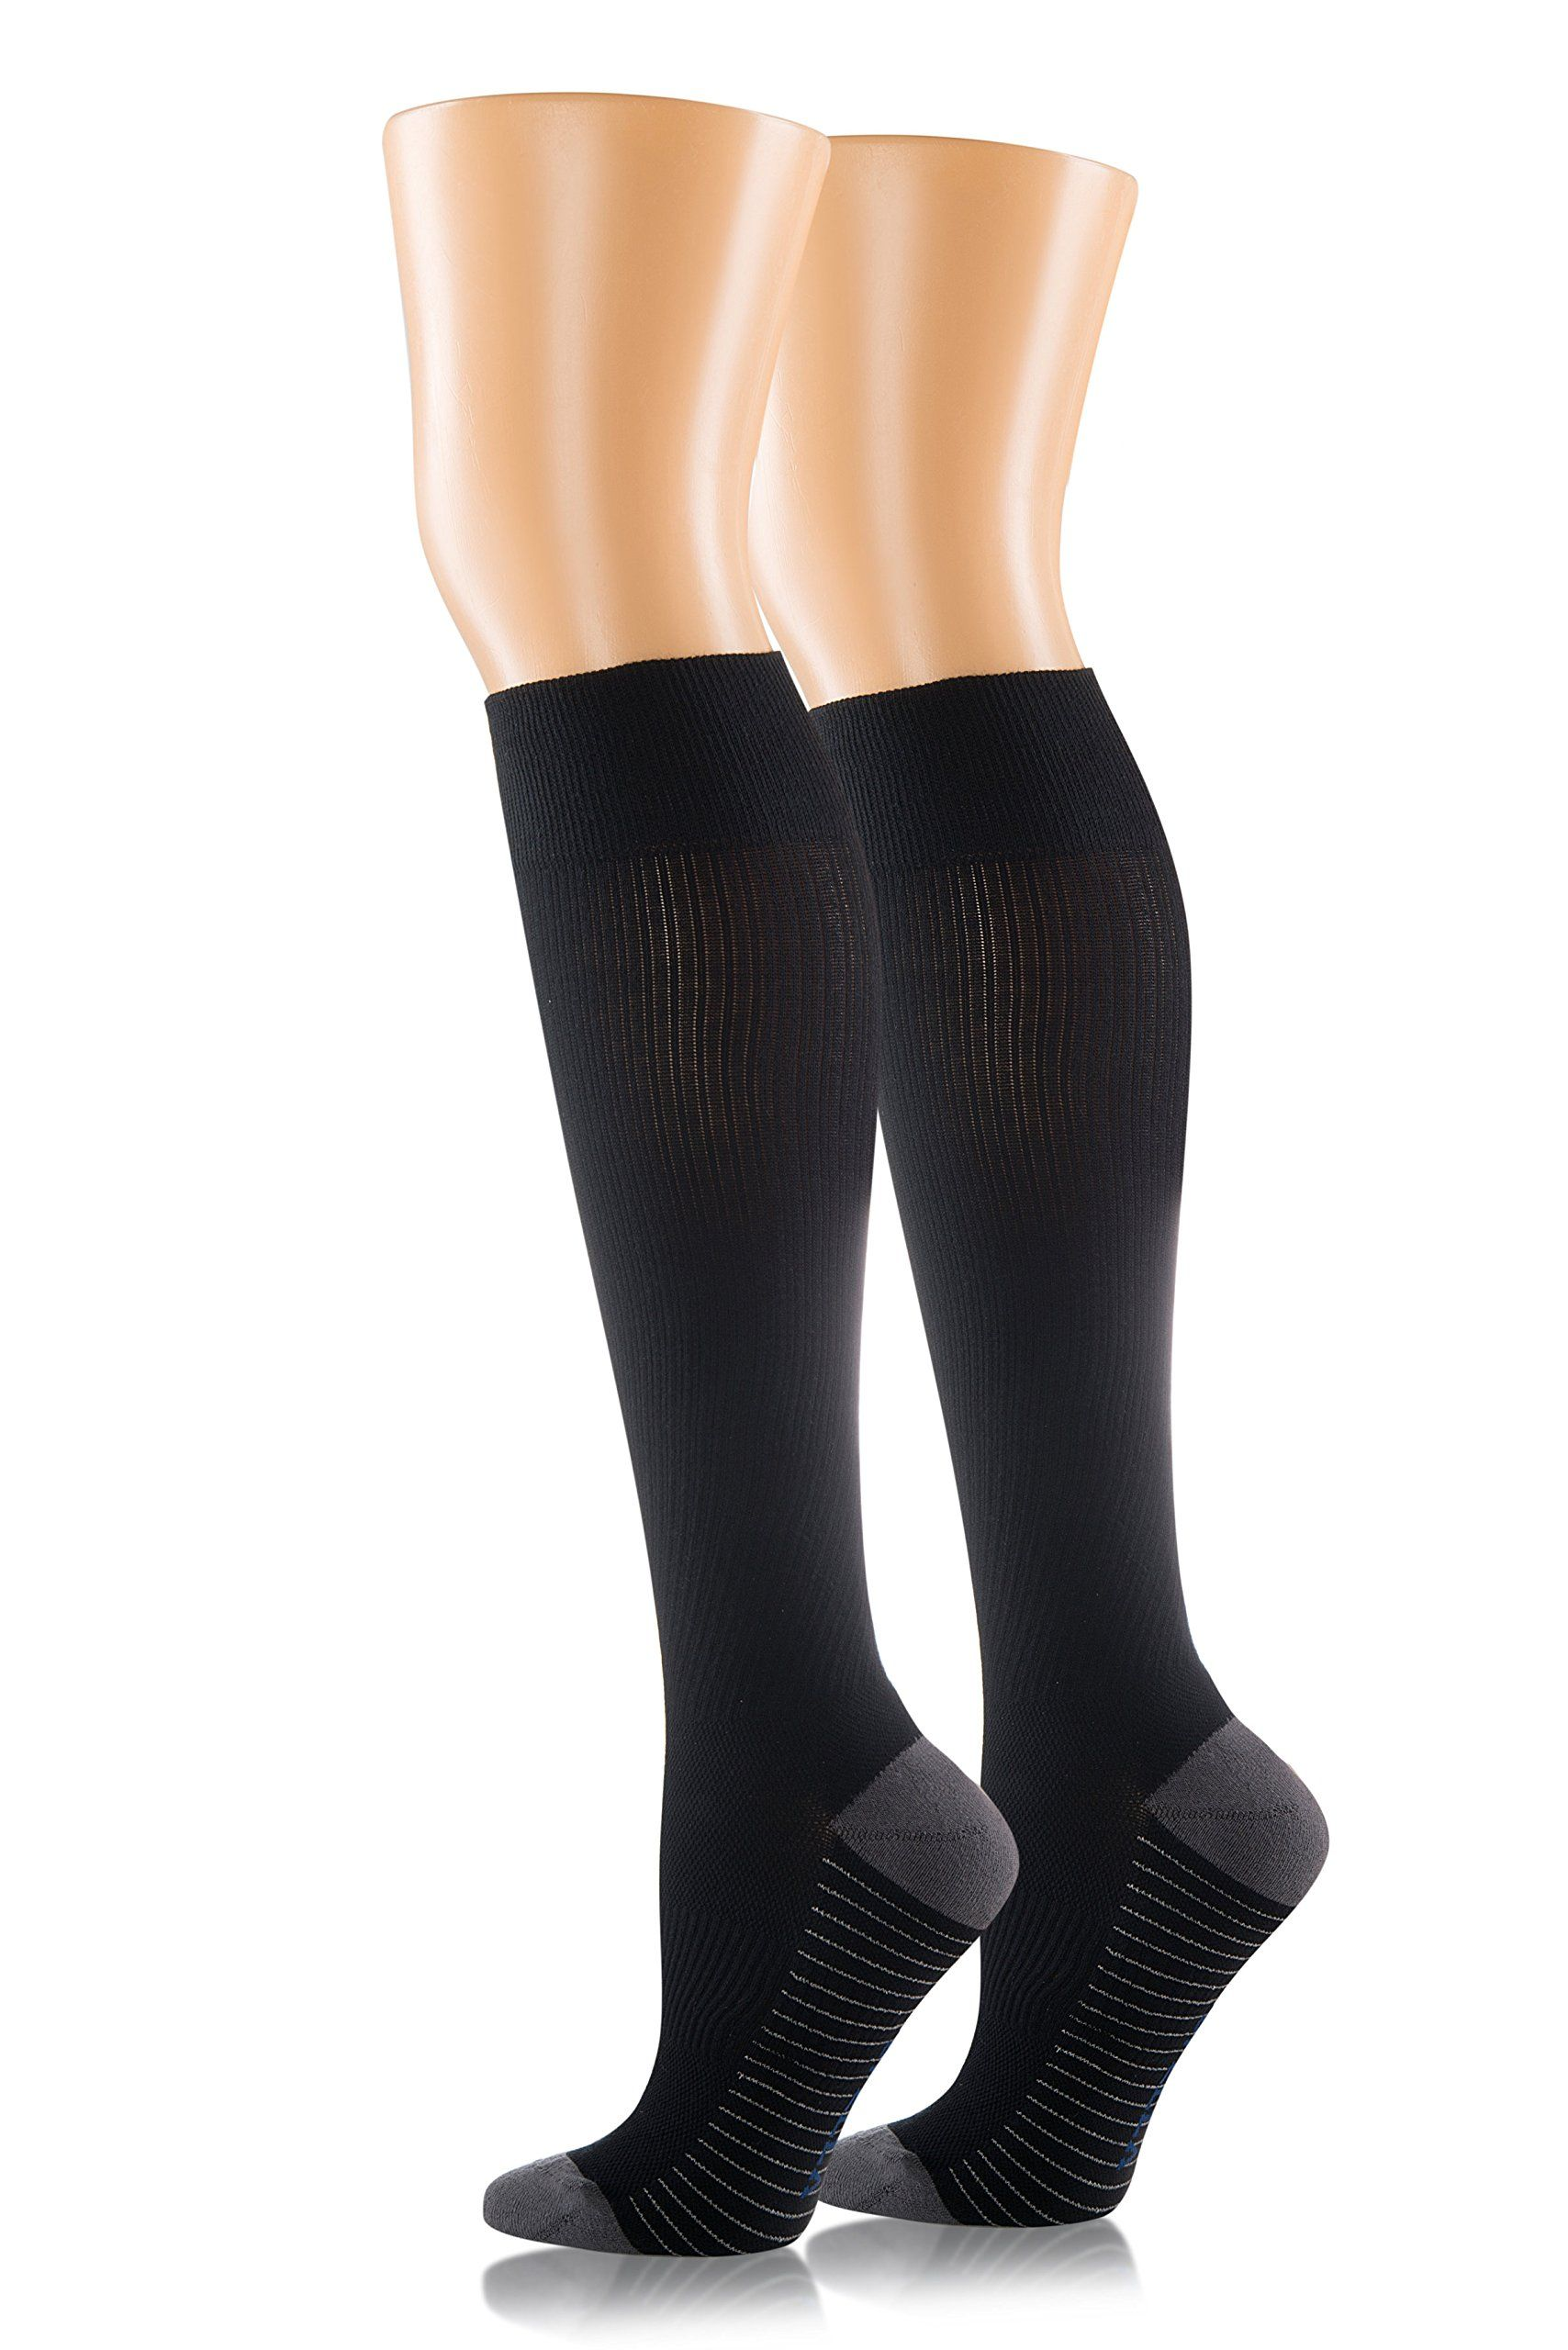 69962fe75d Compression Socks for Men and Women. Medical Graduated Compression 15-20  mmgh. Moderate